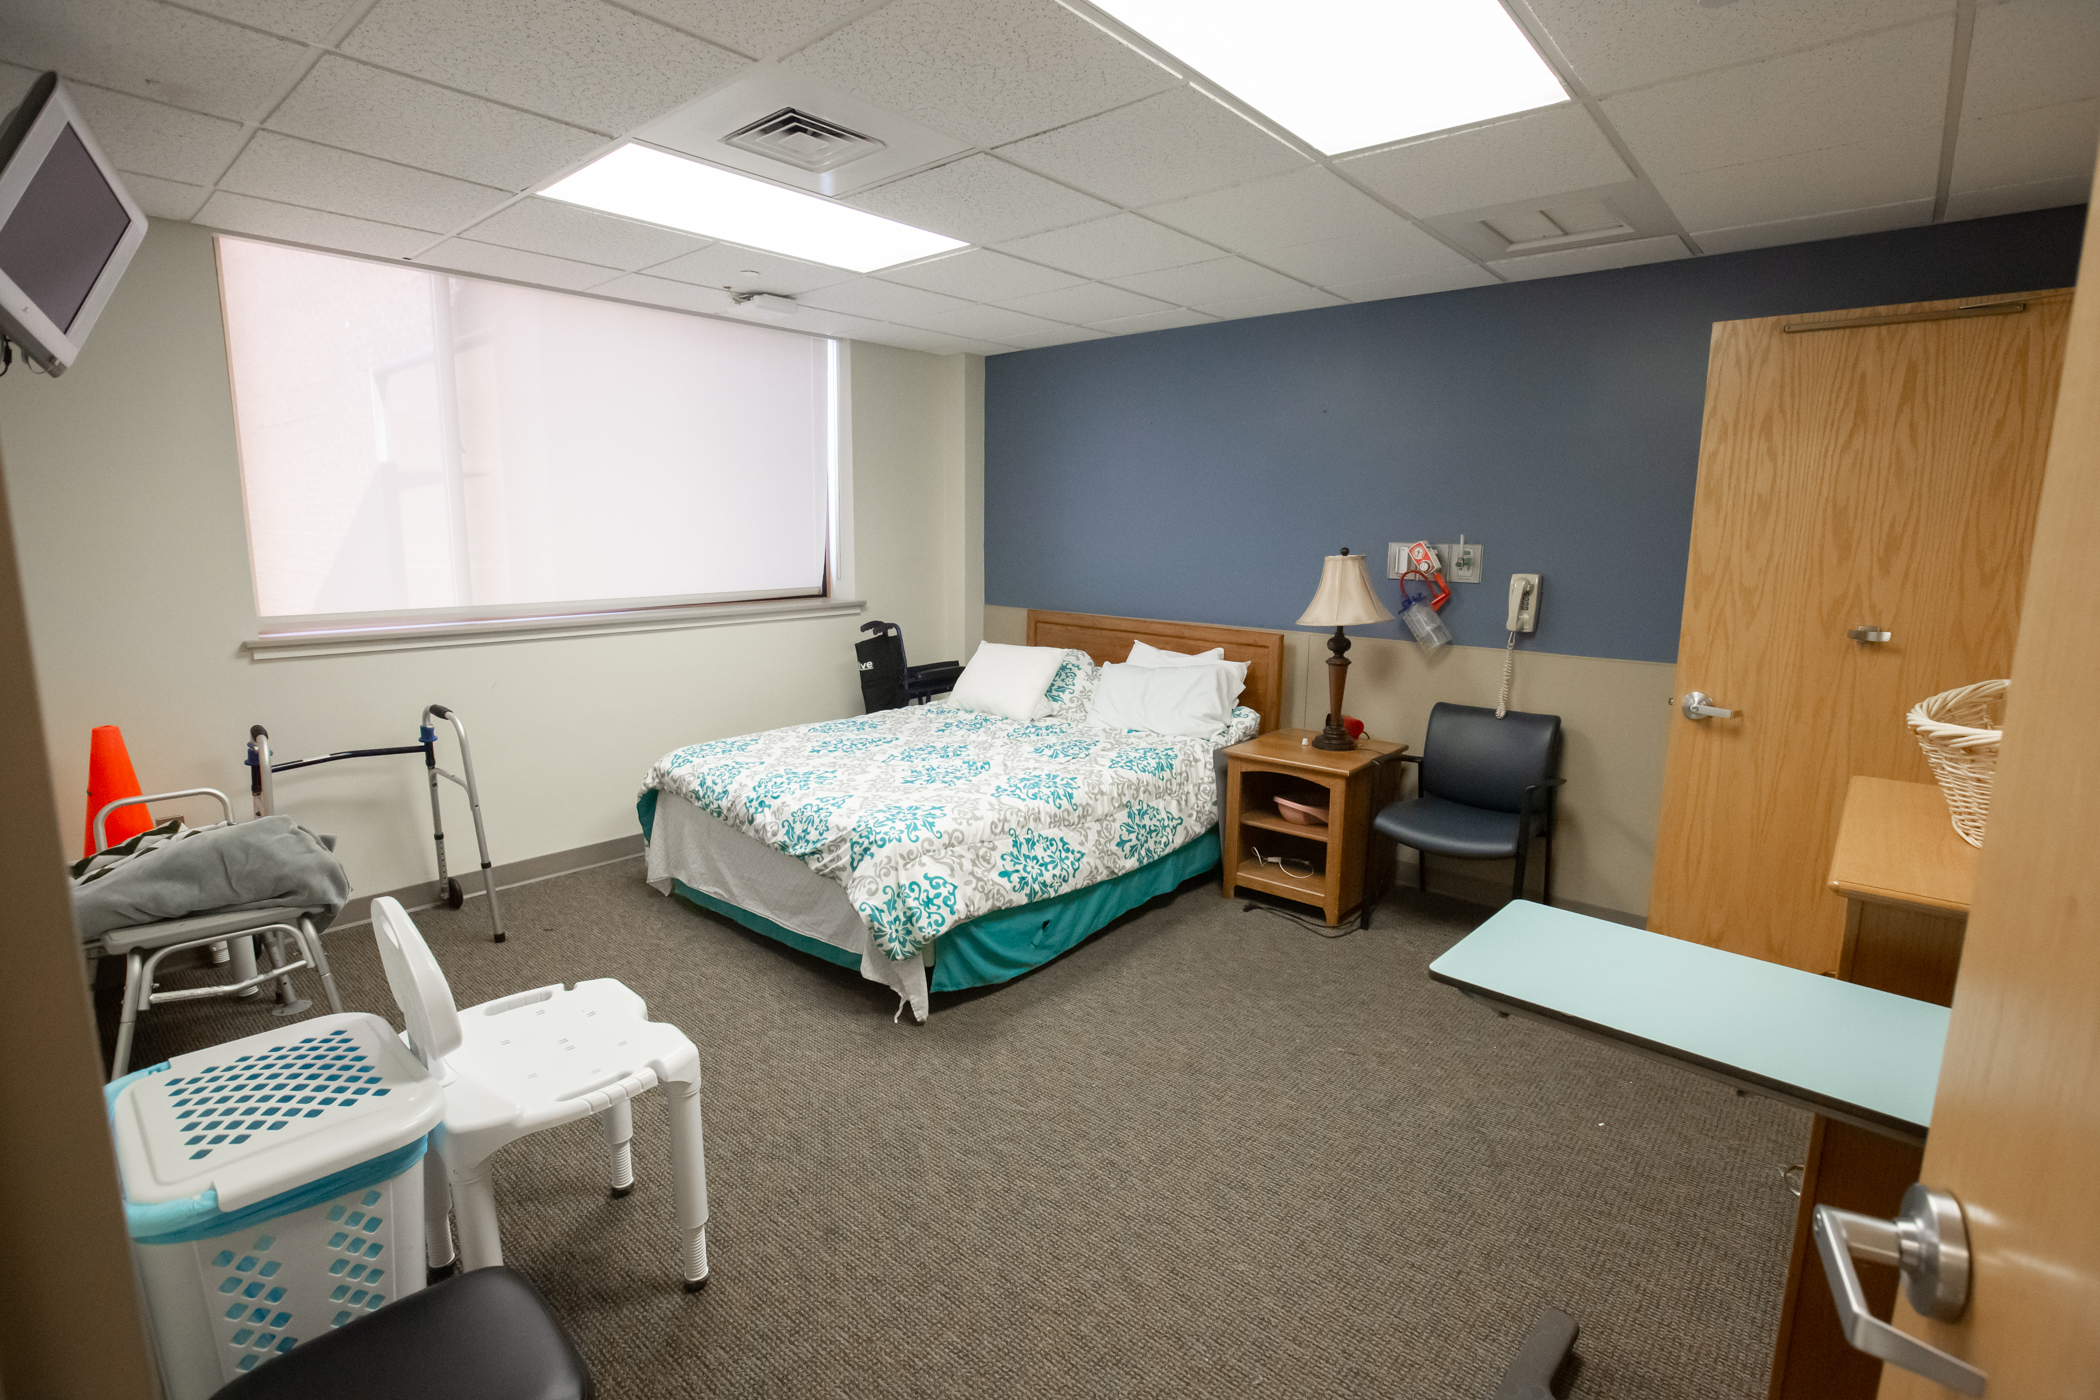 image of therapy areas